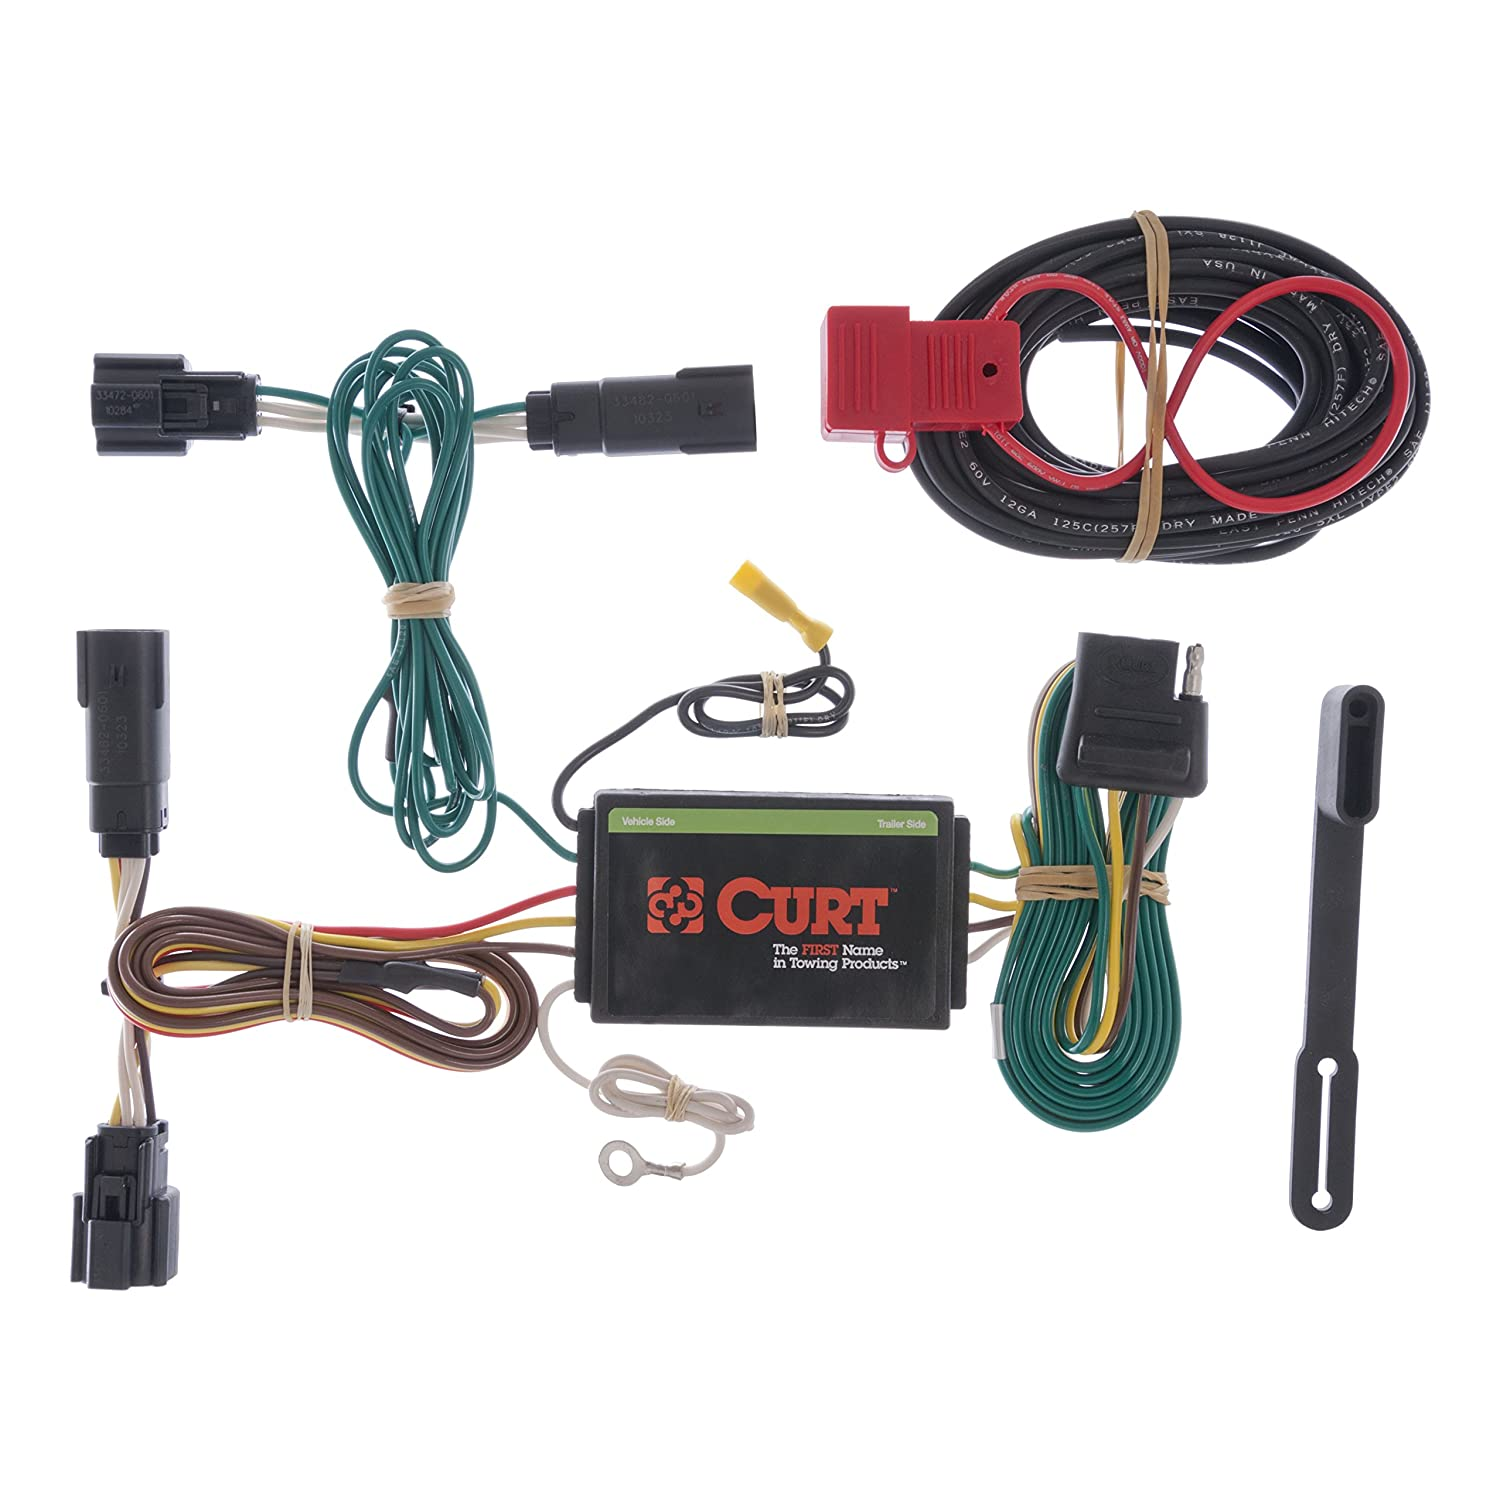 81ohhw2GXXL._SL1500_ amazon com curt 56120 custom wiring harness automotive  at mifinder.co